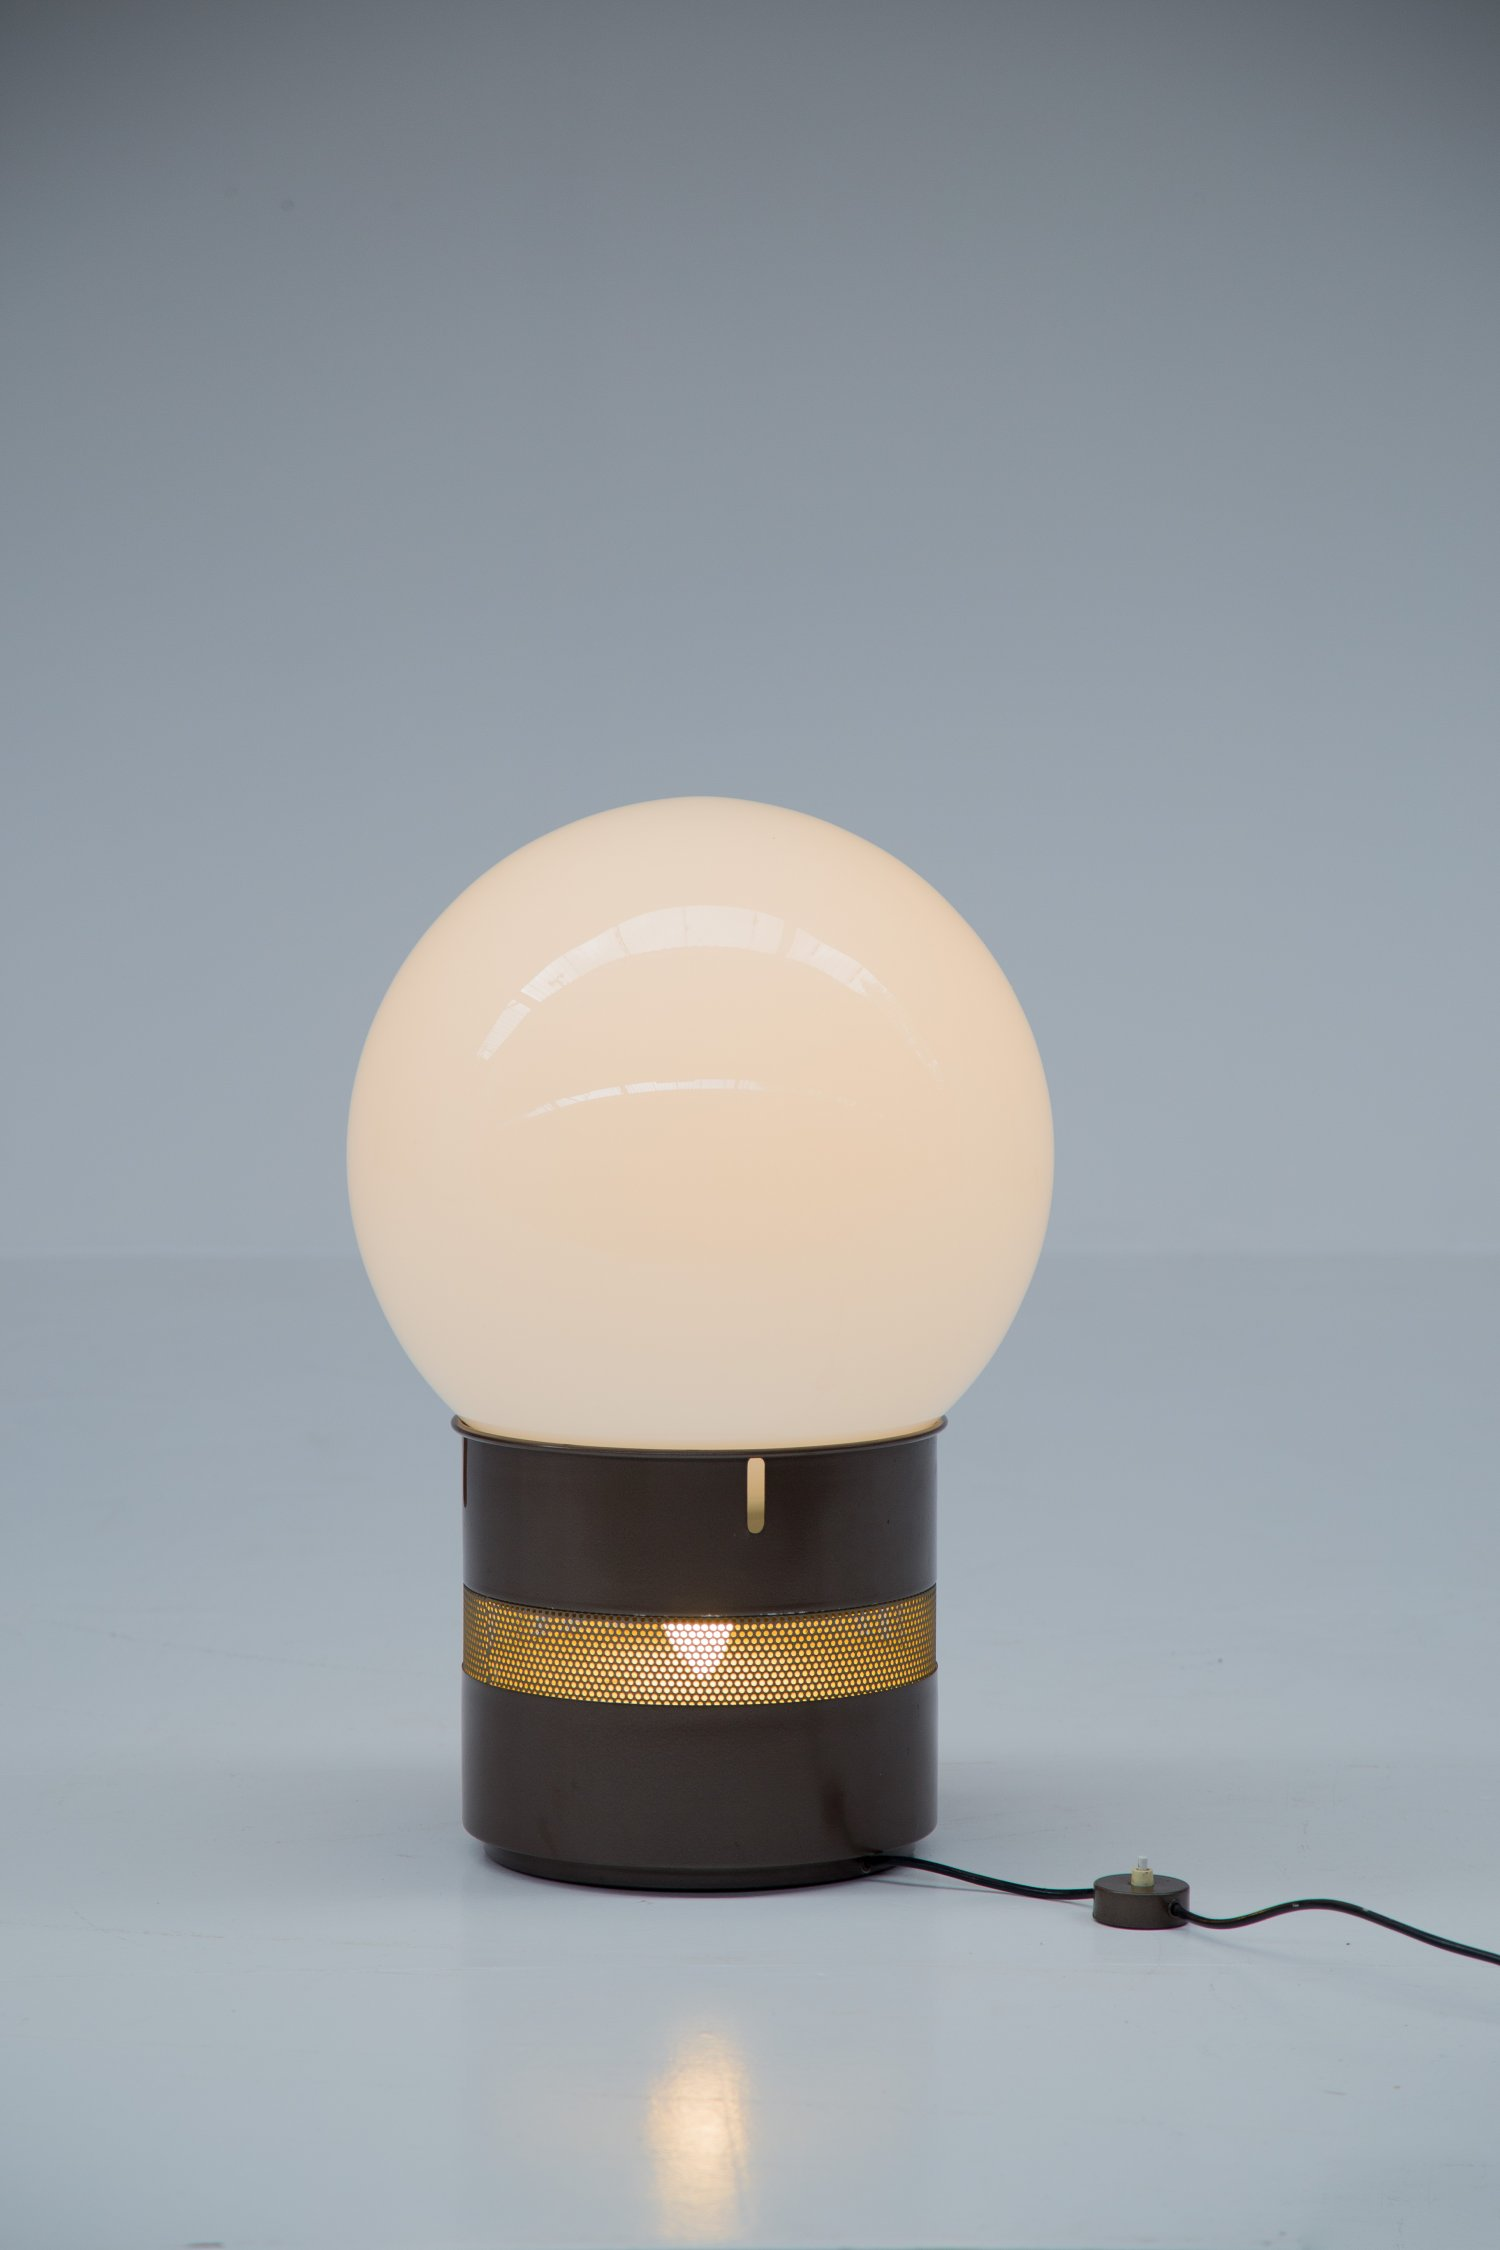 Mezzo Oracolo lamp by Gae Aulenti for Artemide